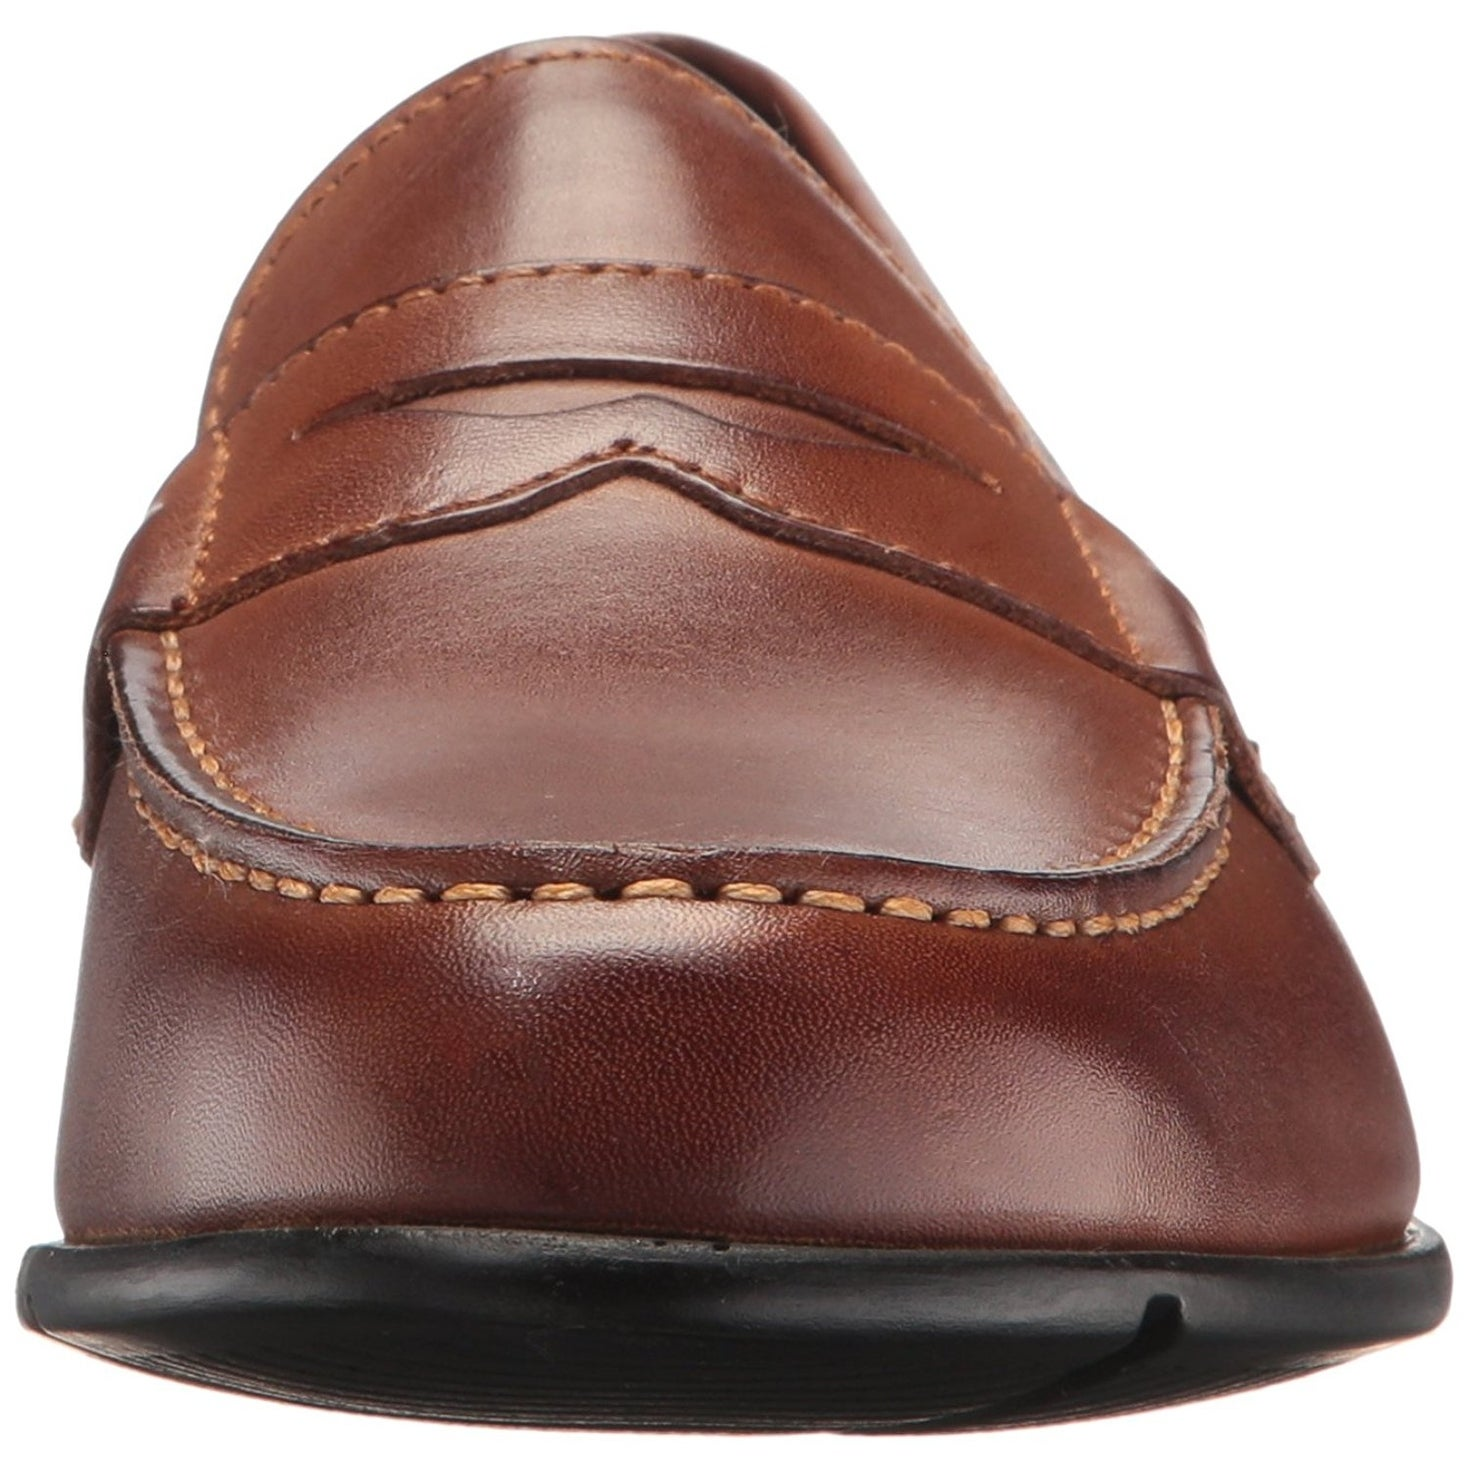 e945e2f7261 Shop Rockport Mens M76444 Leather Round Toe Penny Loafer - Free Shipping On  Orders Over  45 - Overstock - 20941124